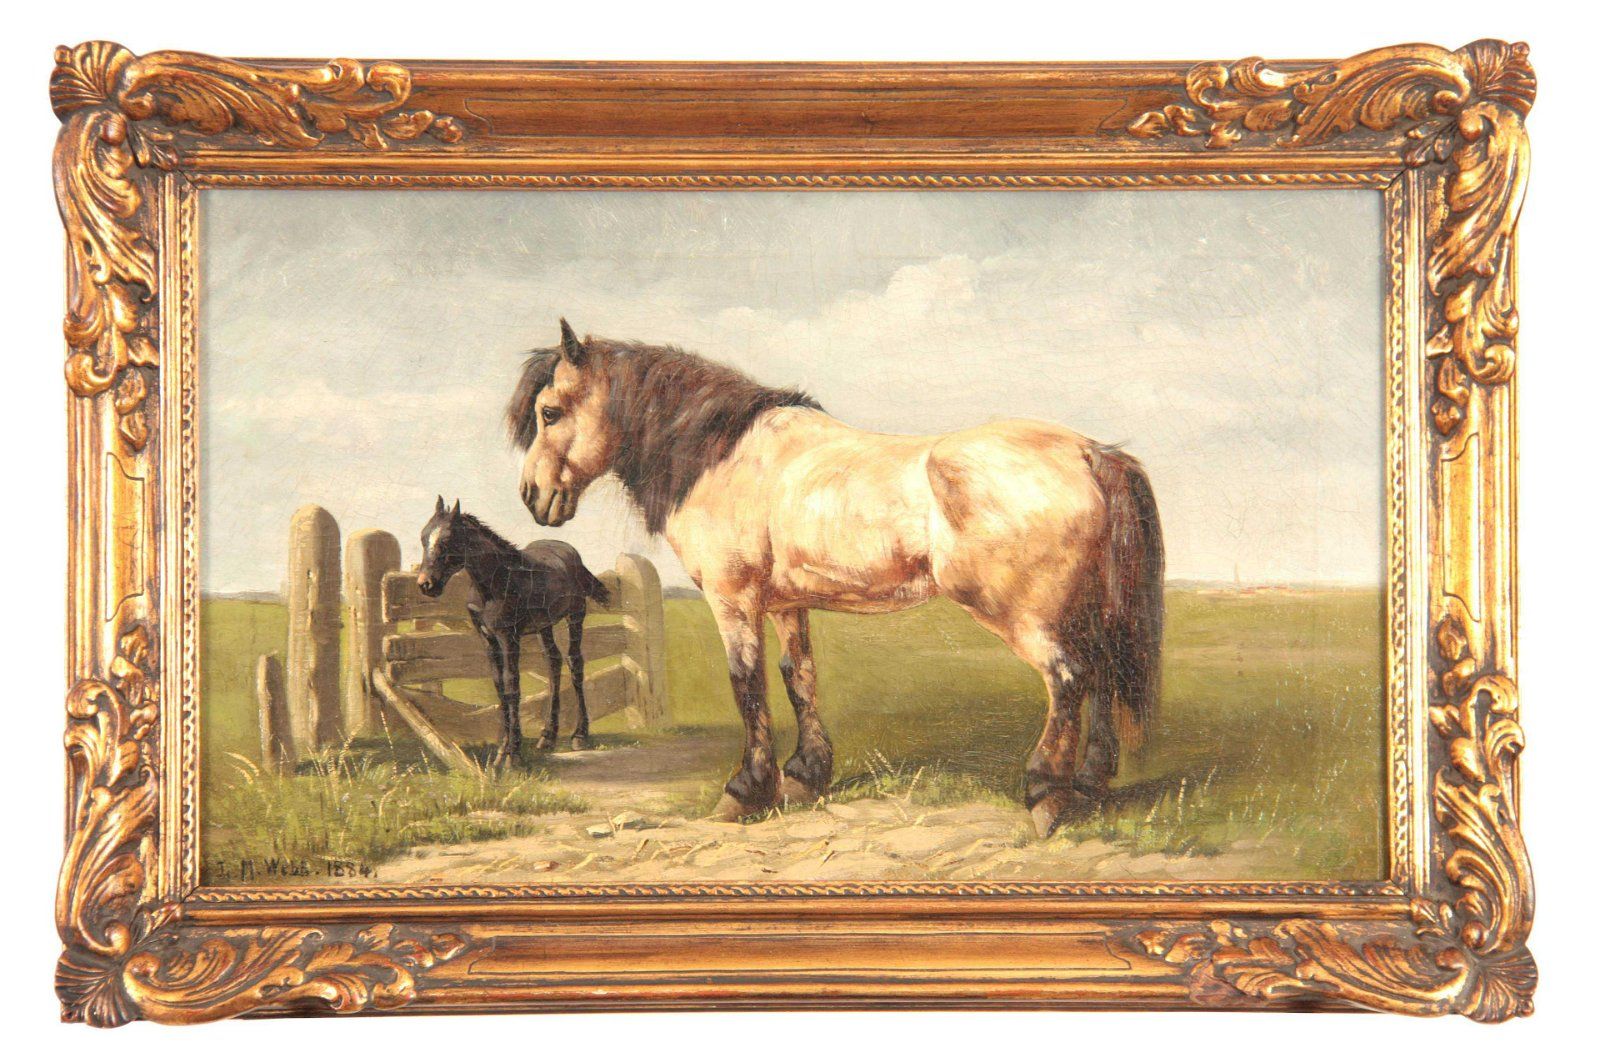 L.M. WEBB. 19th CENTURY OIL ON CANVAS. Horse and fowl